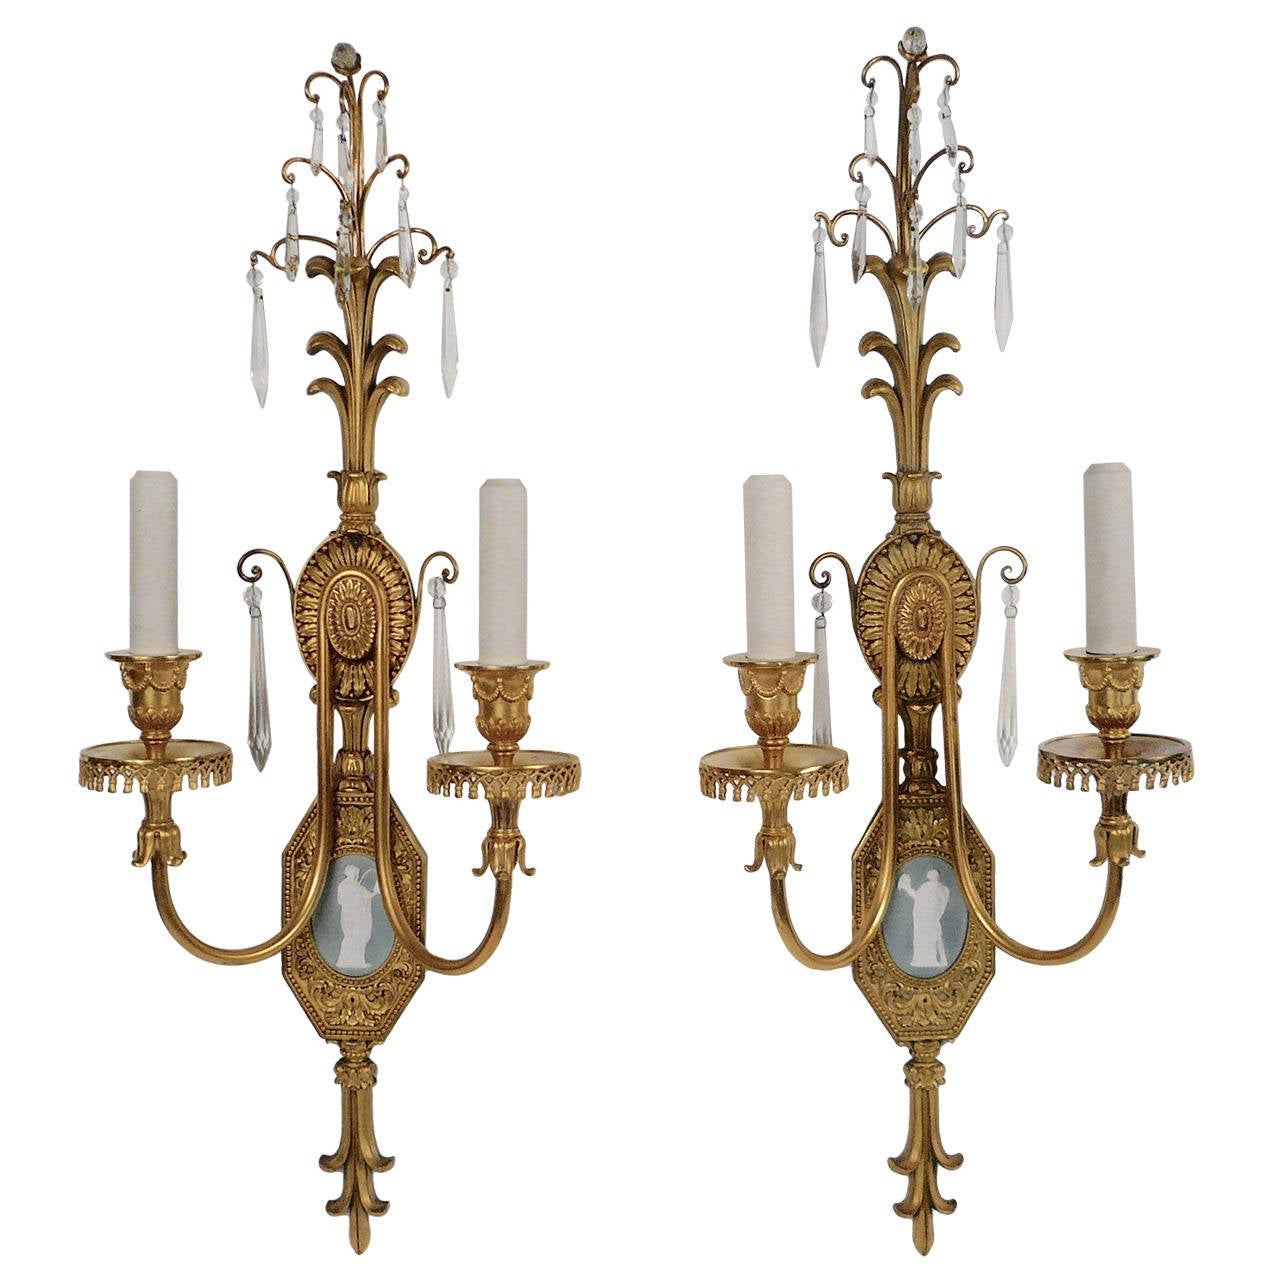 Pair of Adam Style Gilt Bronze Sconces with Enamel Plaques, by E.F. Caldwell For Sale